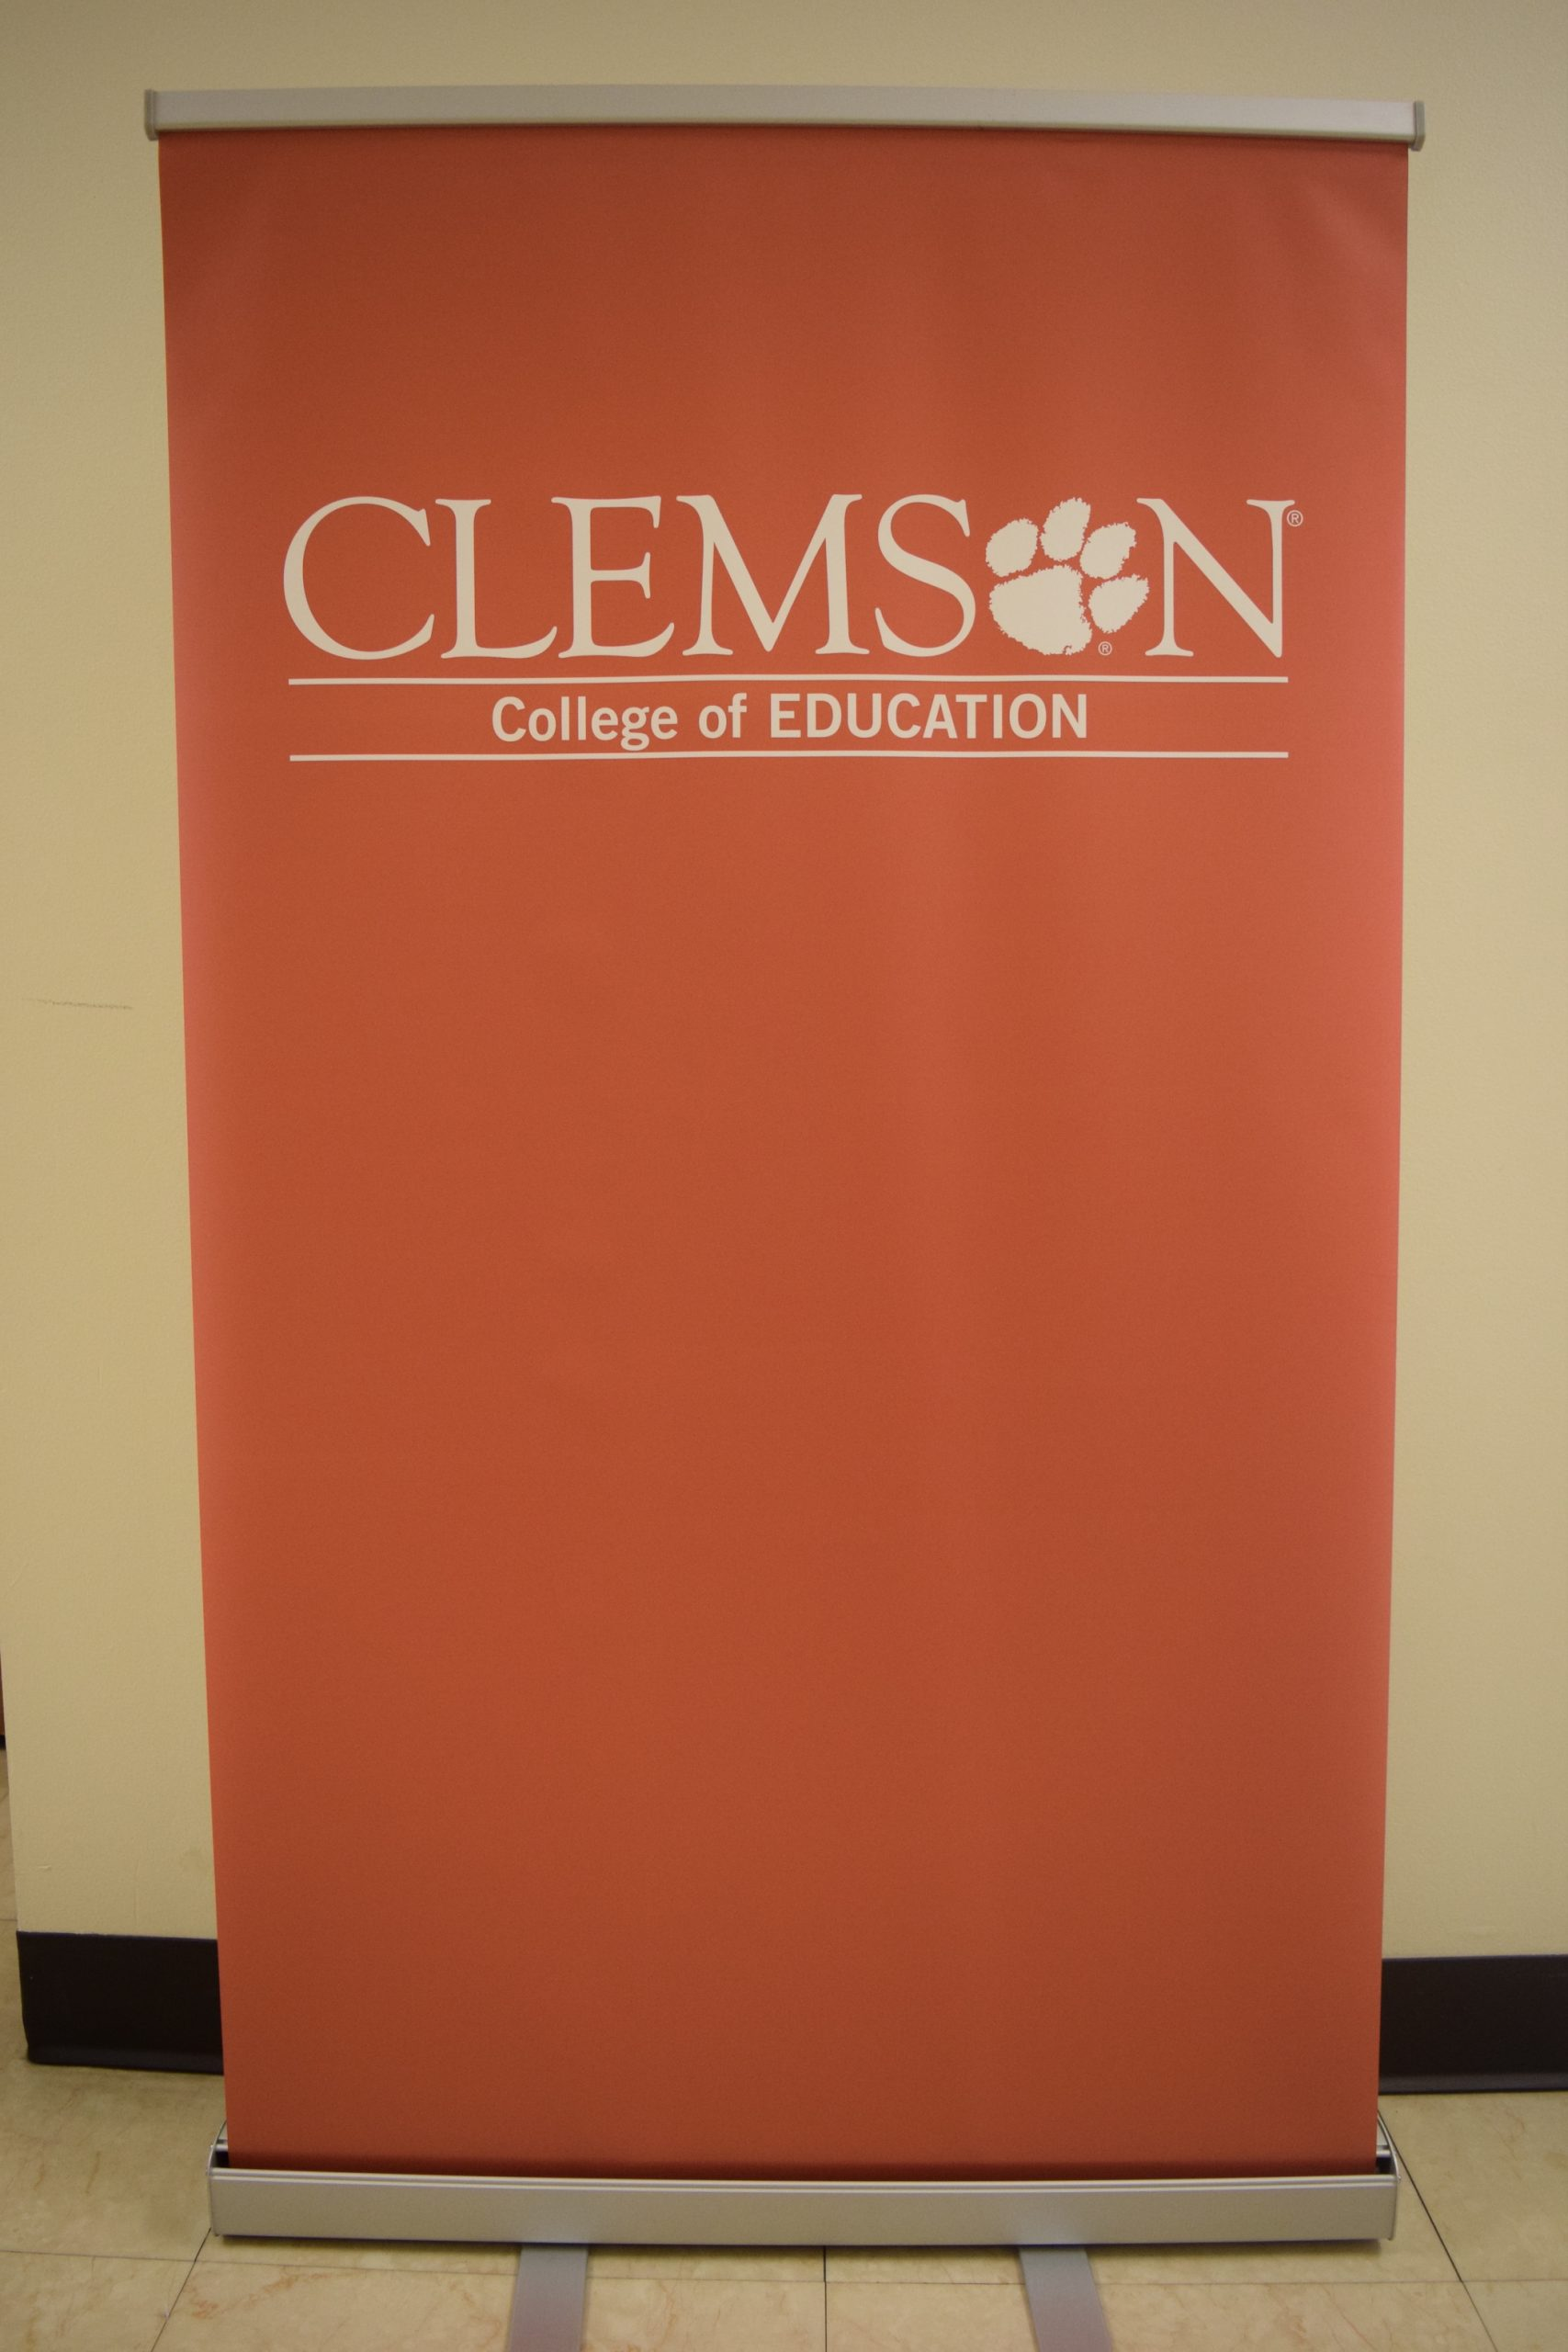 Clemson College of Education banner